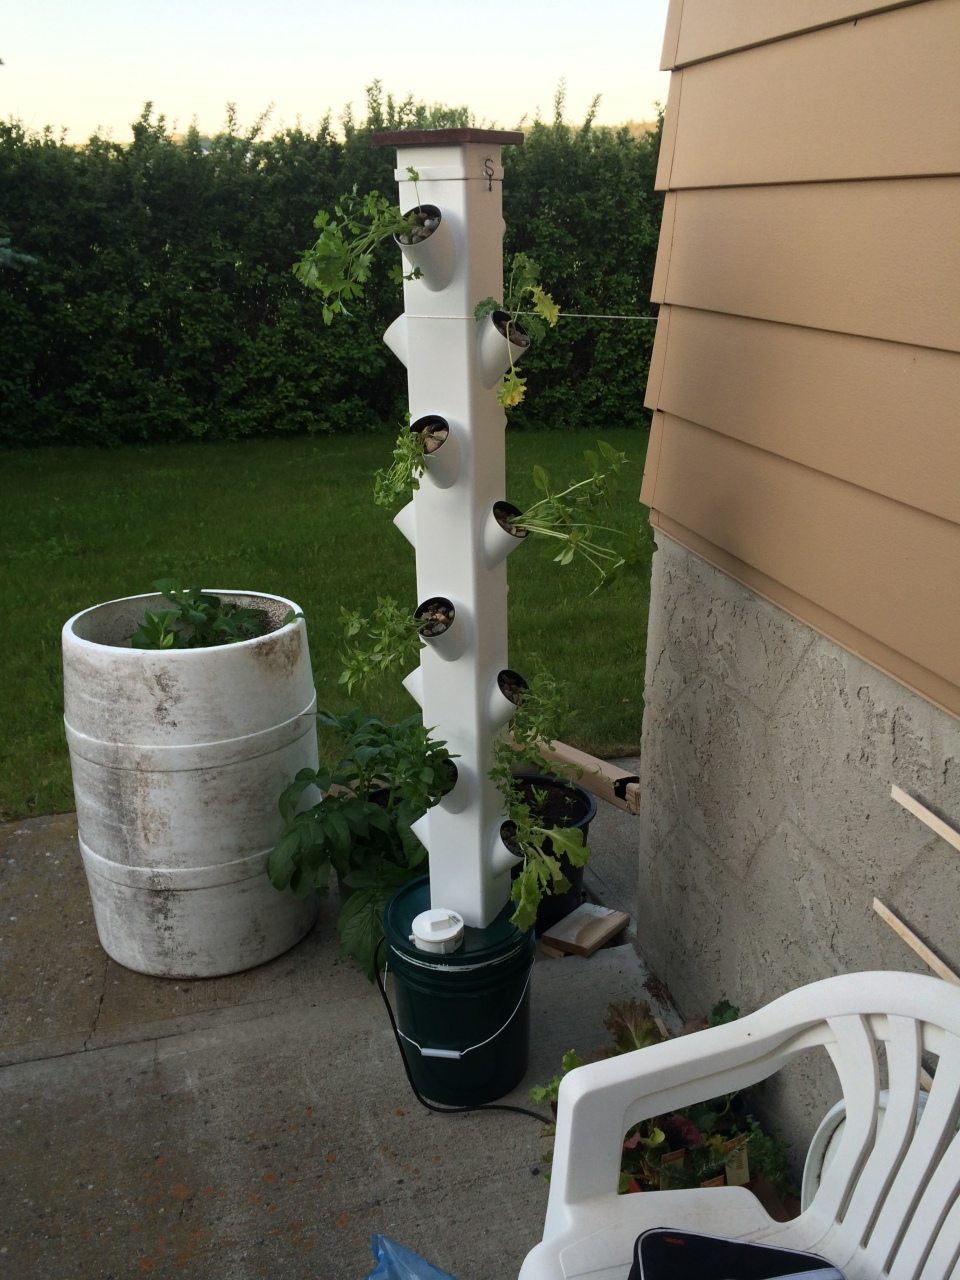 Hydroponic Tower Garden Part 4 (Final) | Economically Green